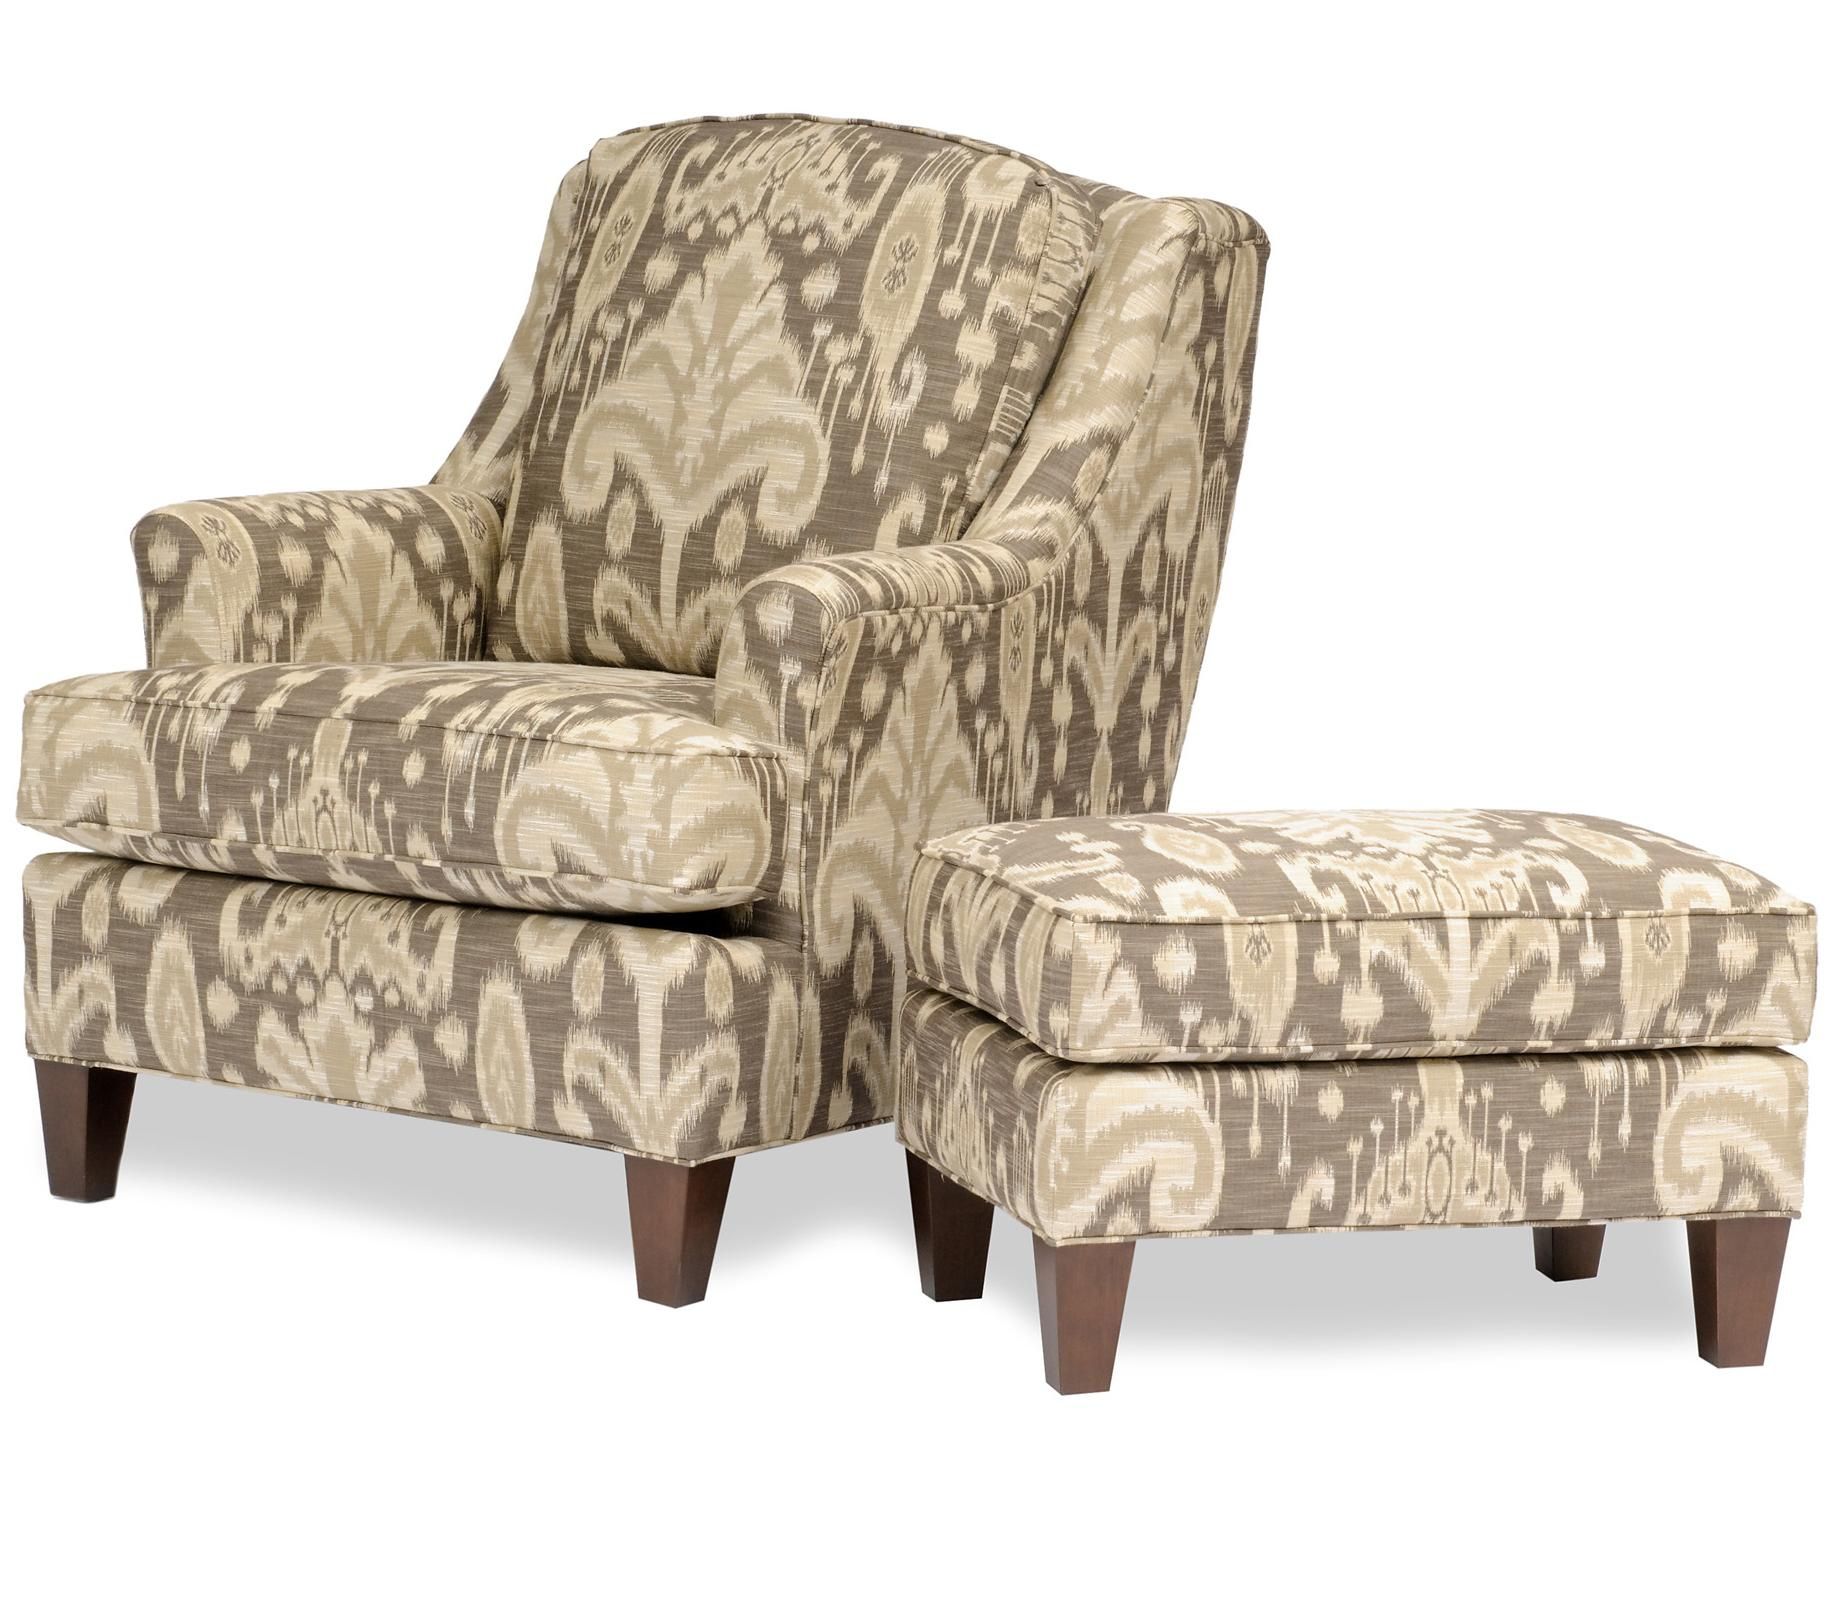 Cool Accent Chairs With Grey Patterned Ottoman Plus Brown Wooden Leg For  Awesome Interior Idea